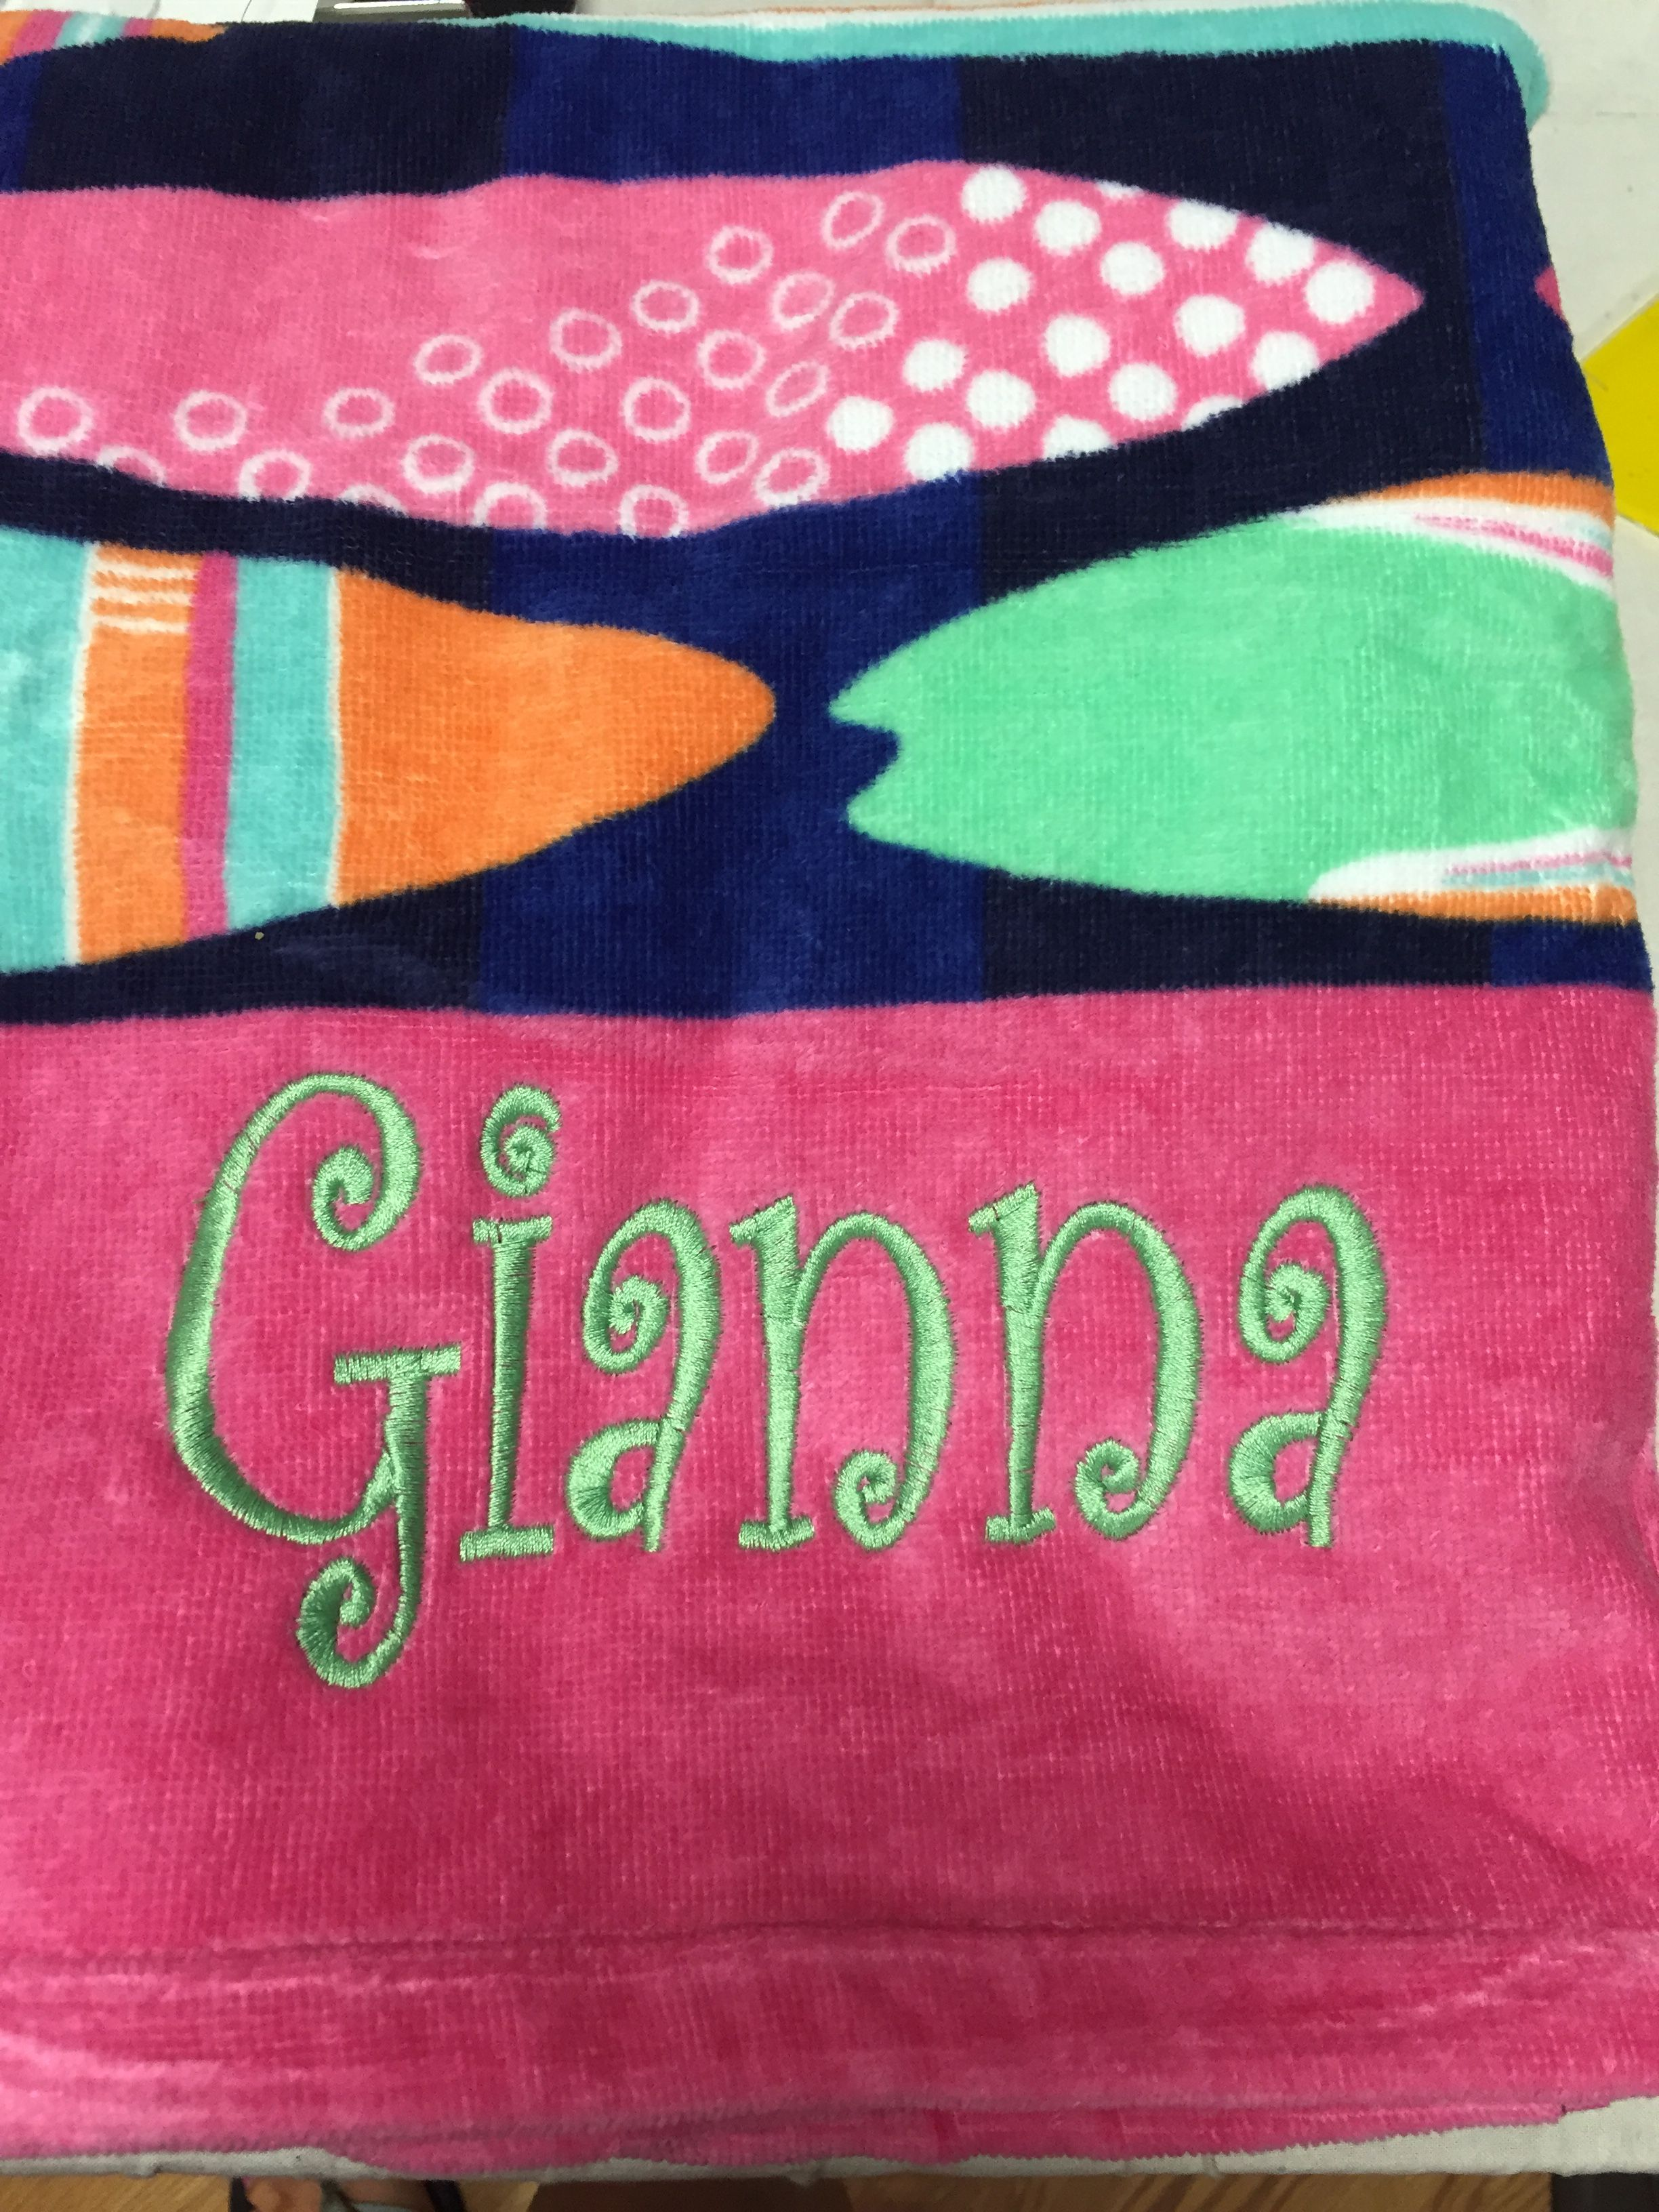 Embroidered names on towel | custom embroidery | Pinterest